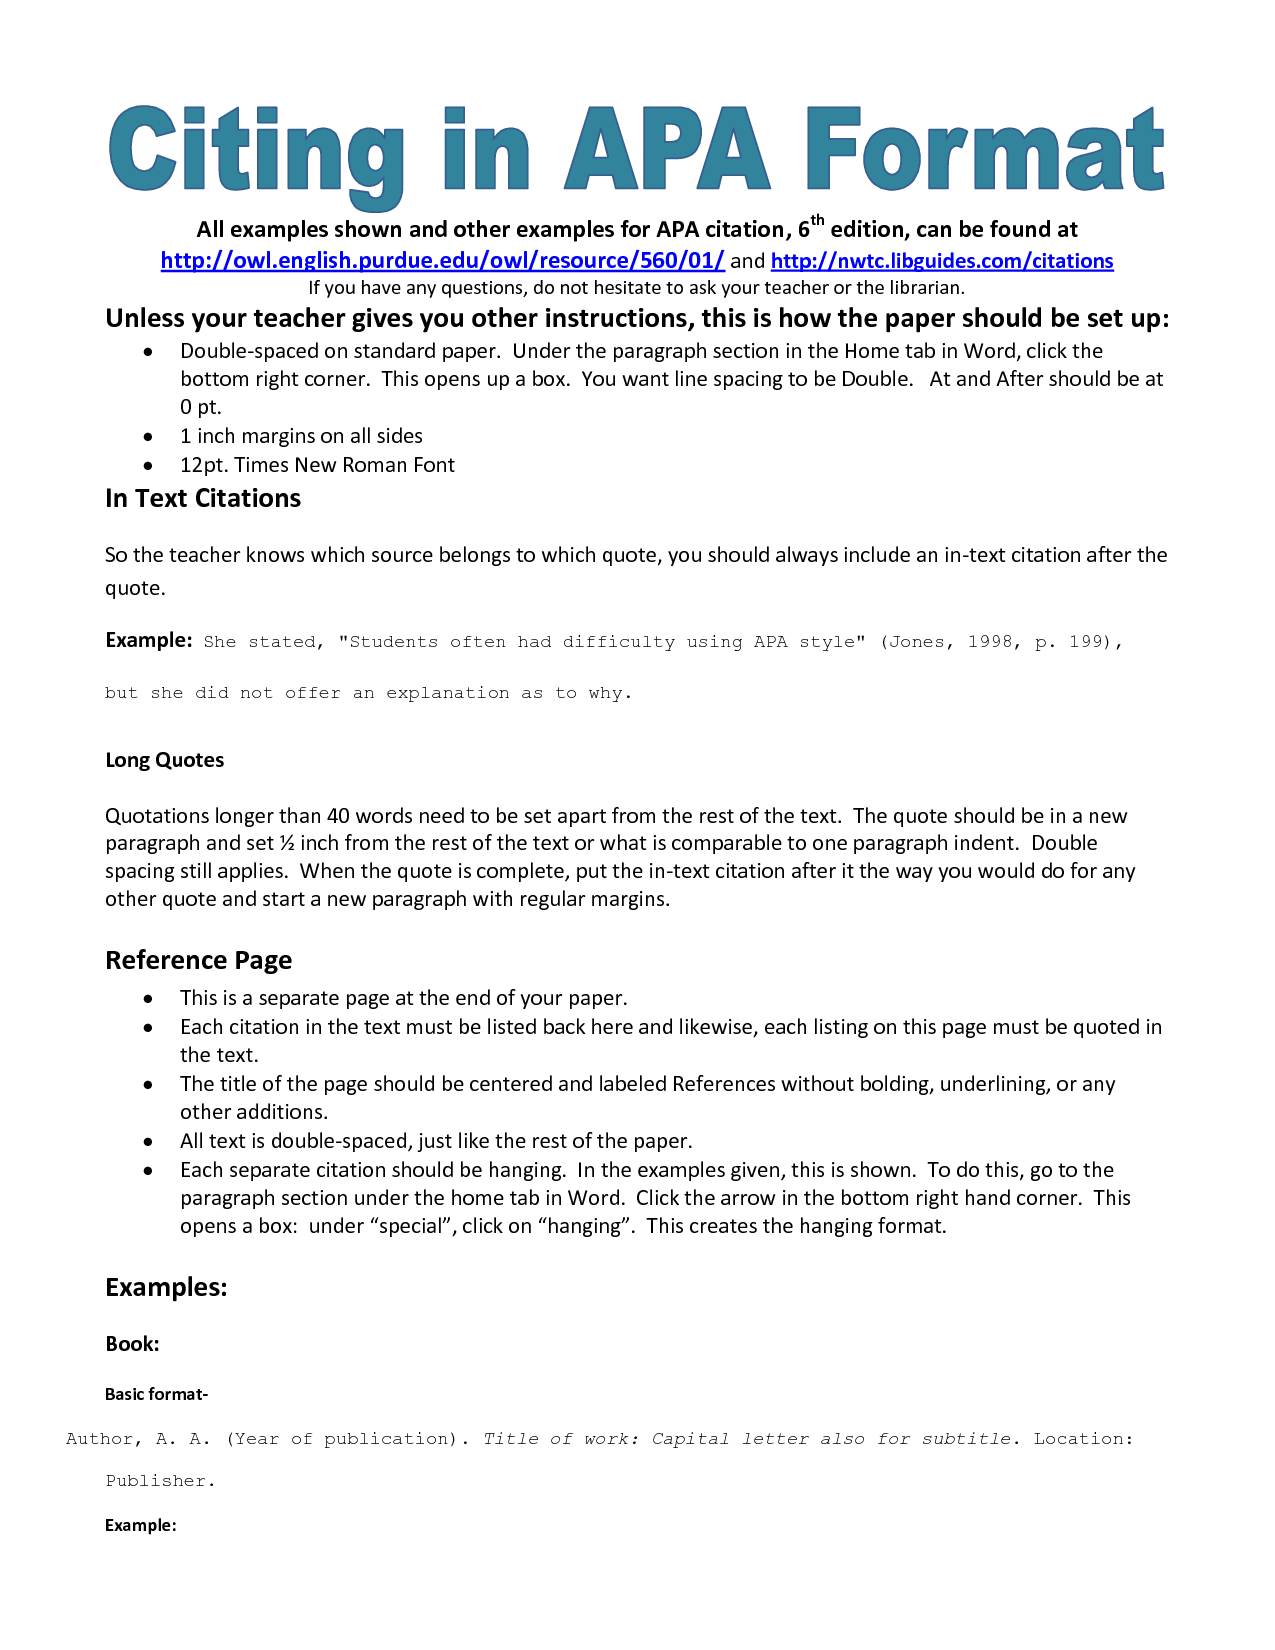 001 Research Paper Apa Format Frightening Citation In Text Citations Style Model Full